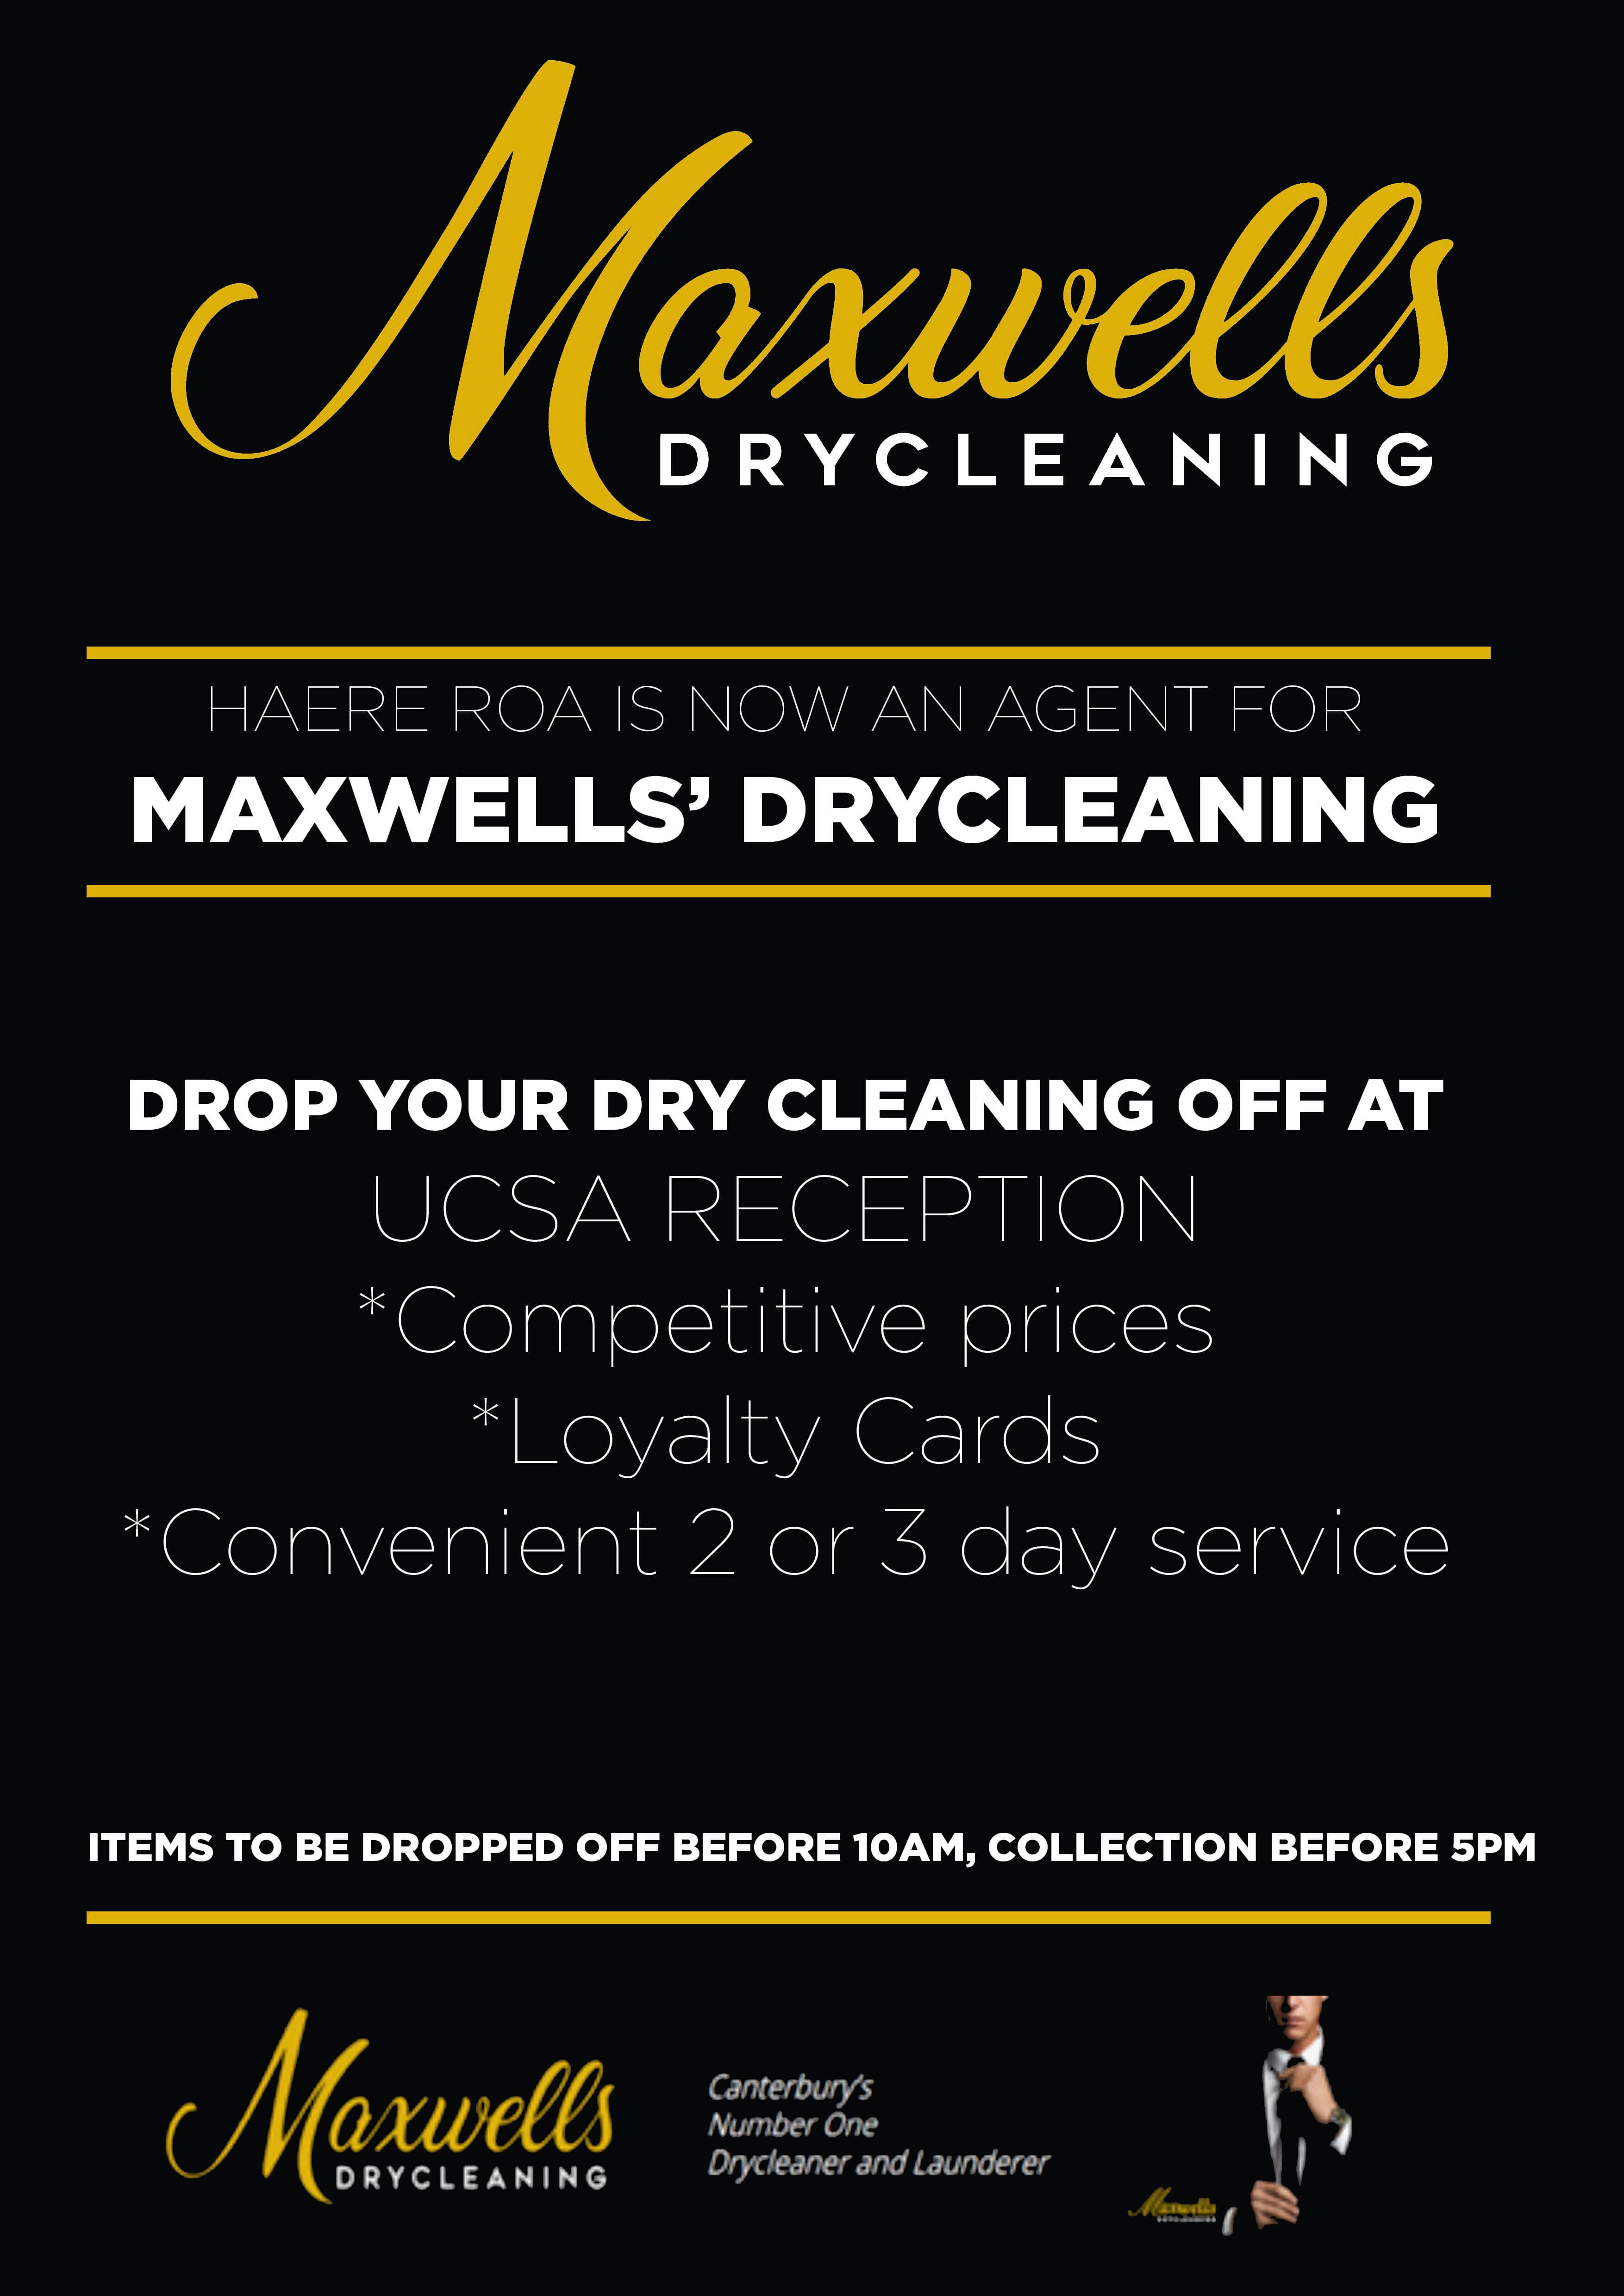 Maxwell's dry cleaning